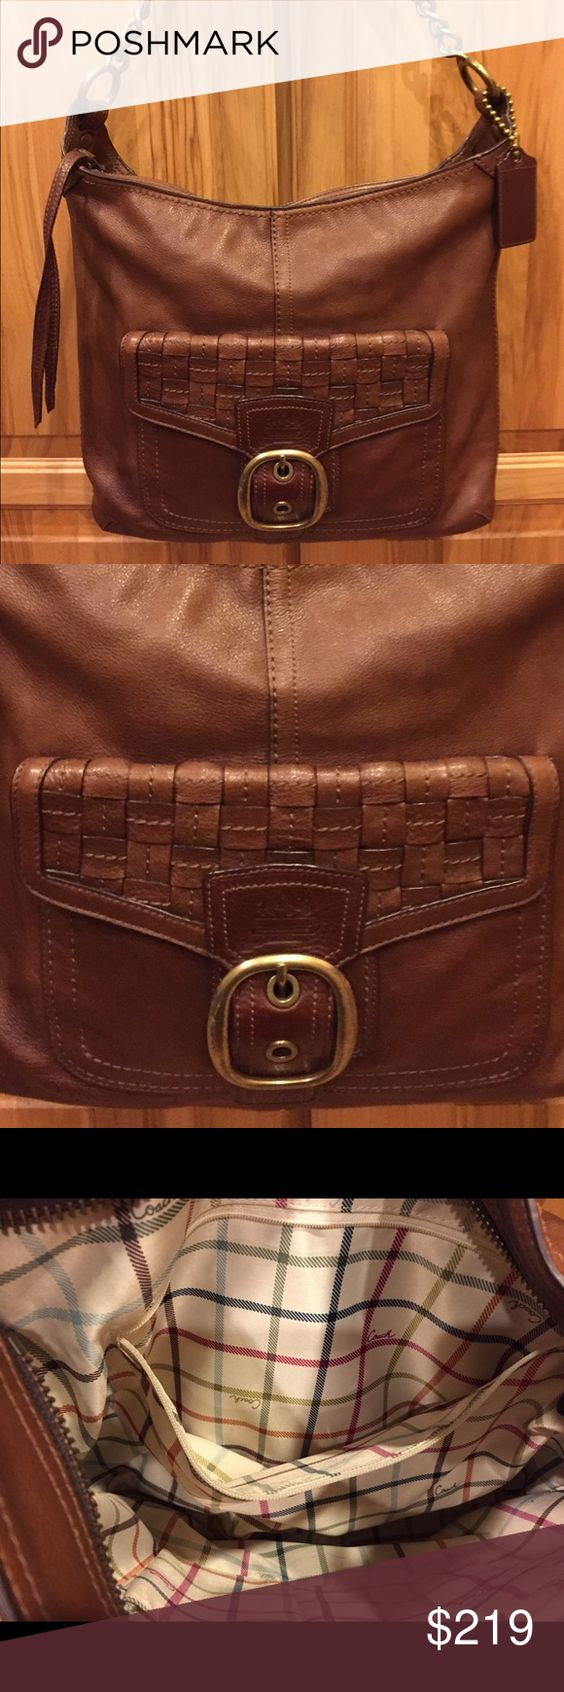 Brown Leather Coach Legacy Purse All soft leather bag with woven leather pocket on exterior front. Leather and chain shoulder strap. Legacy fabric lining (pic #3). Zippered pocket and 2 slip in pockets inside. Like new. Coach Bags Shoulder Bags